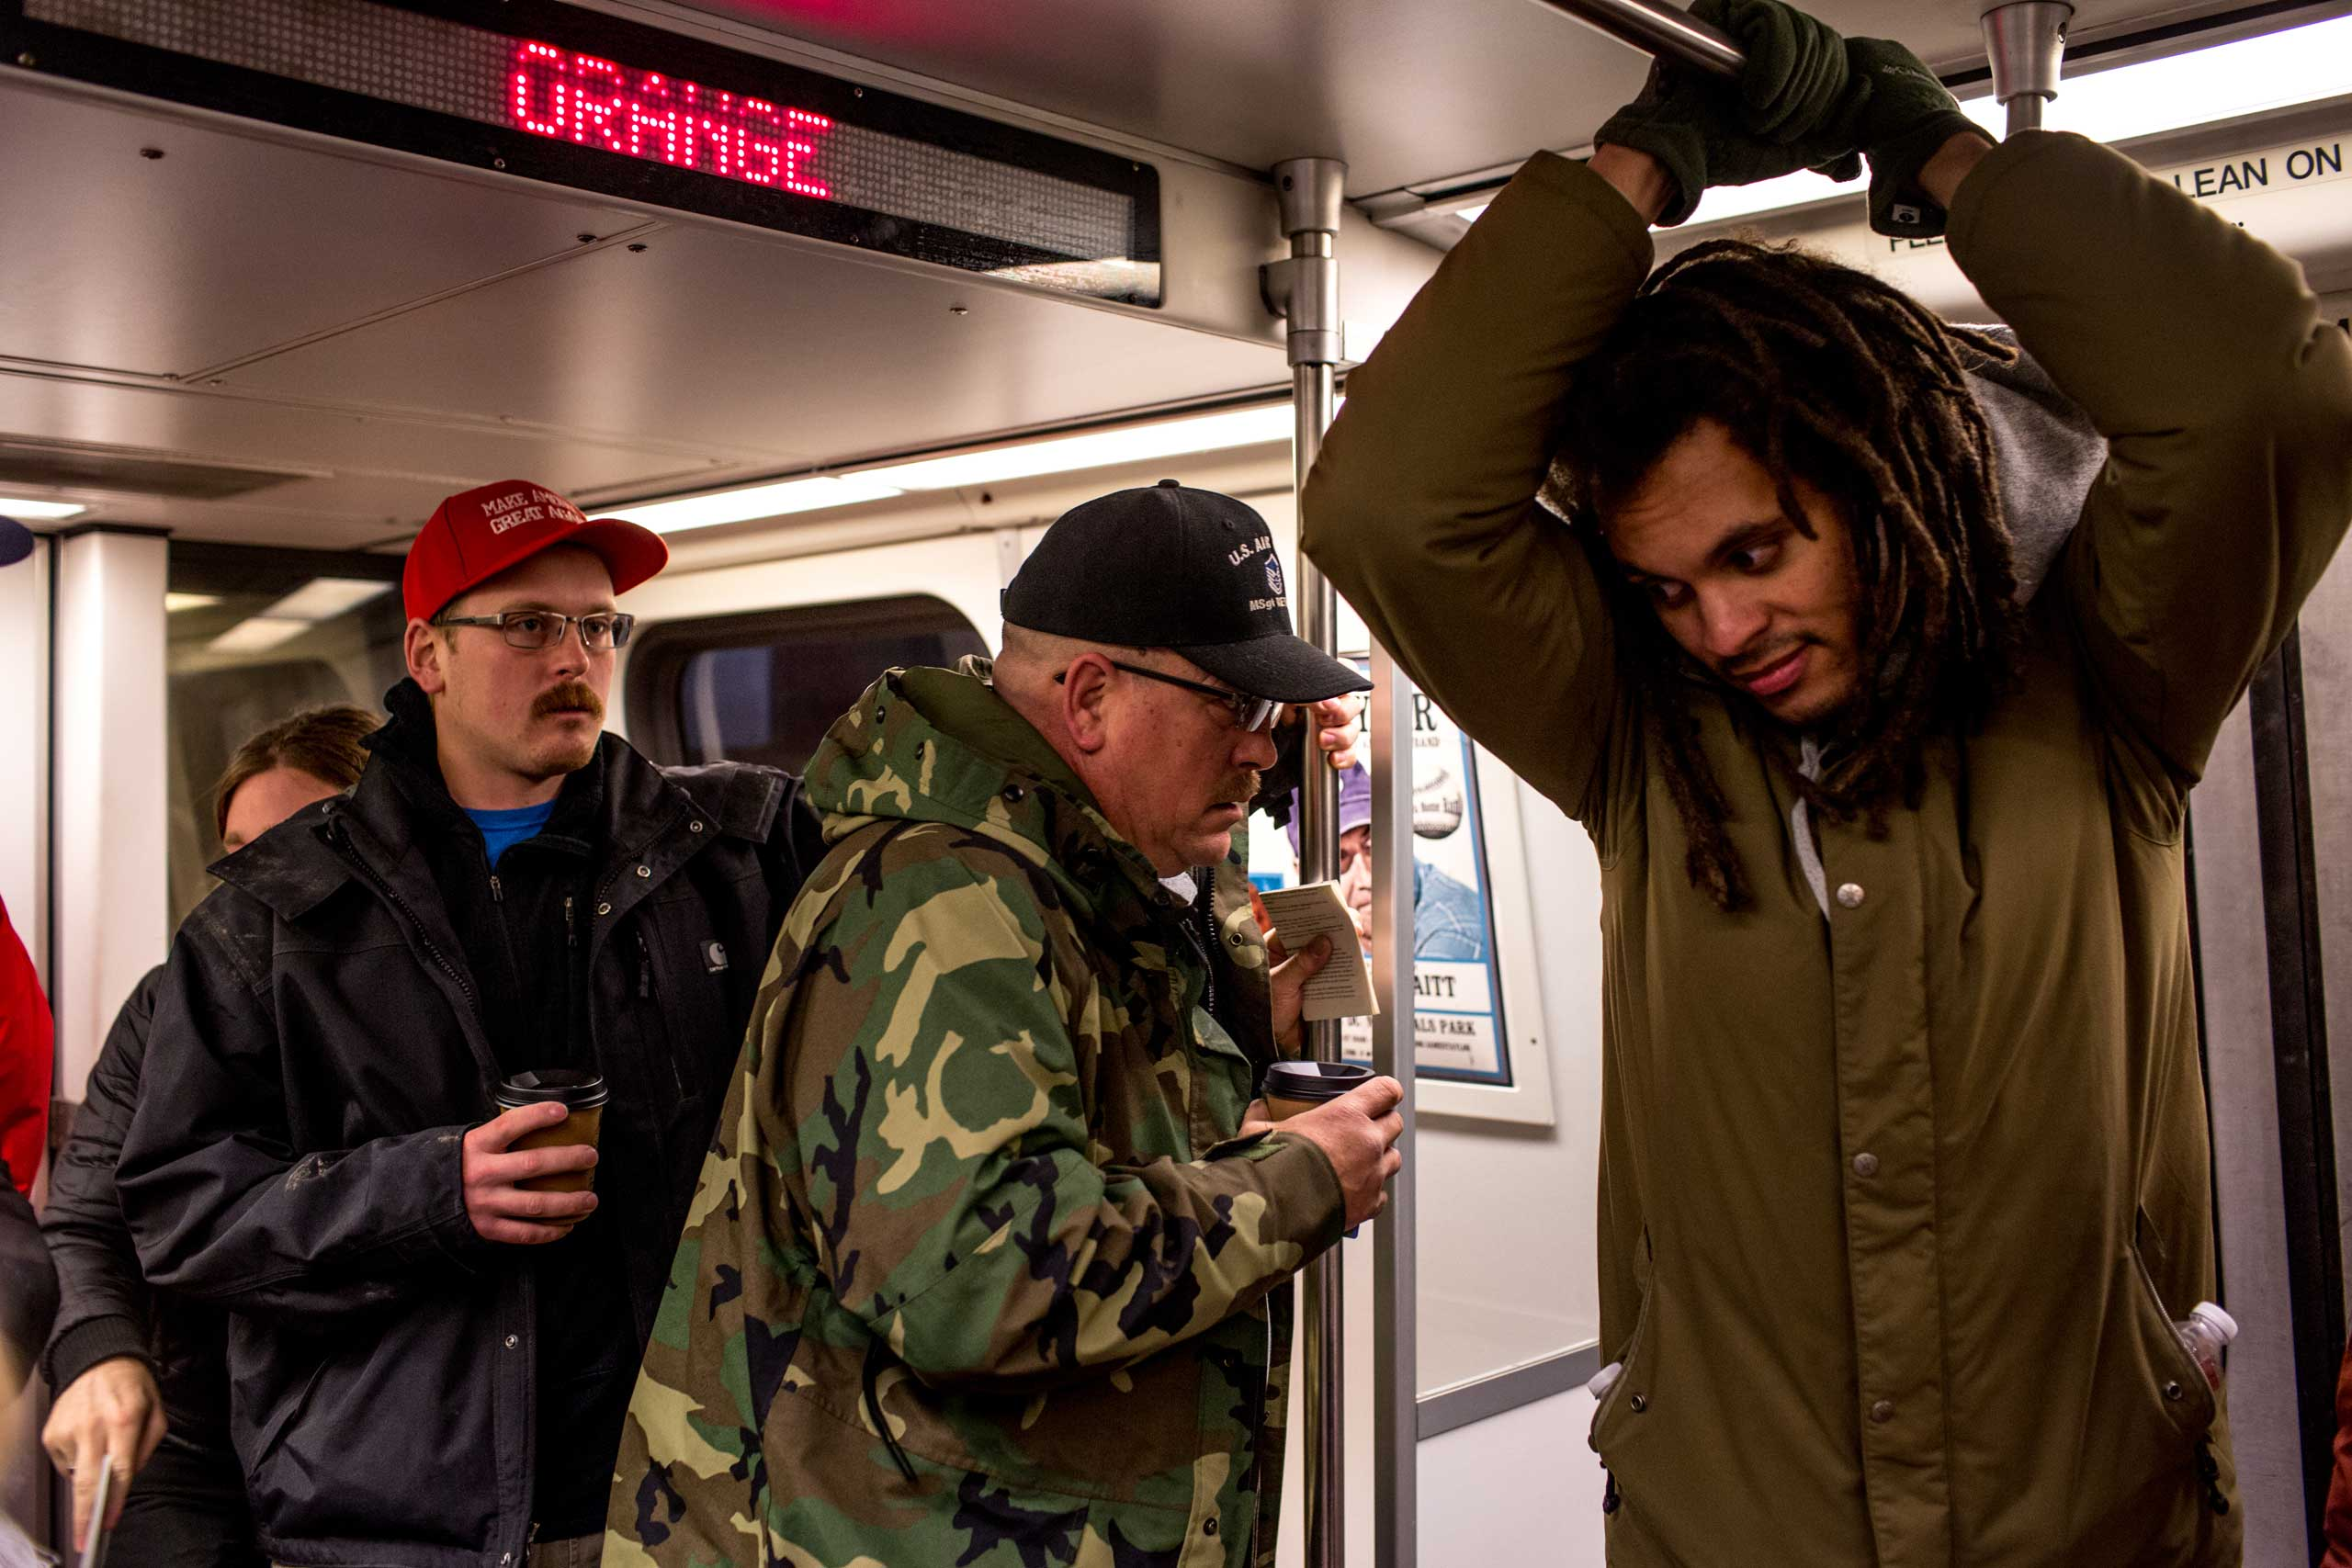 6:45 AM: A group of Trump supporters rides the metro next to an activist from New York. The tension is palpable but no one's talking.